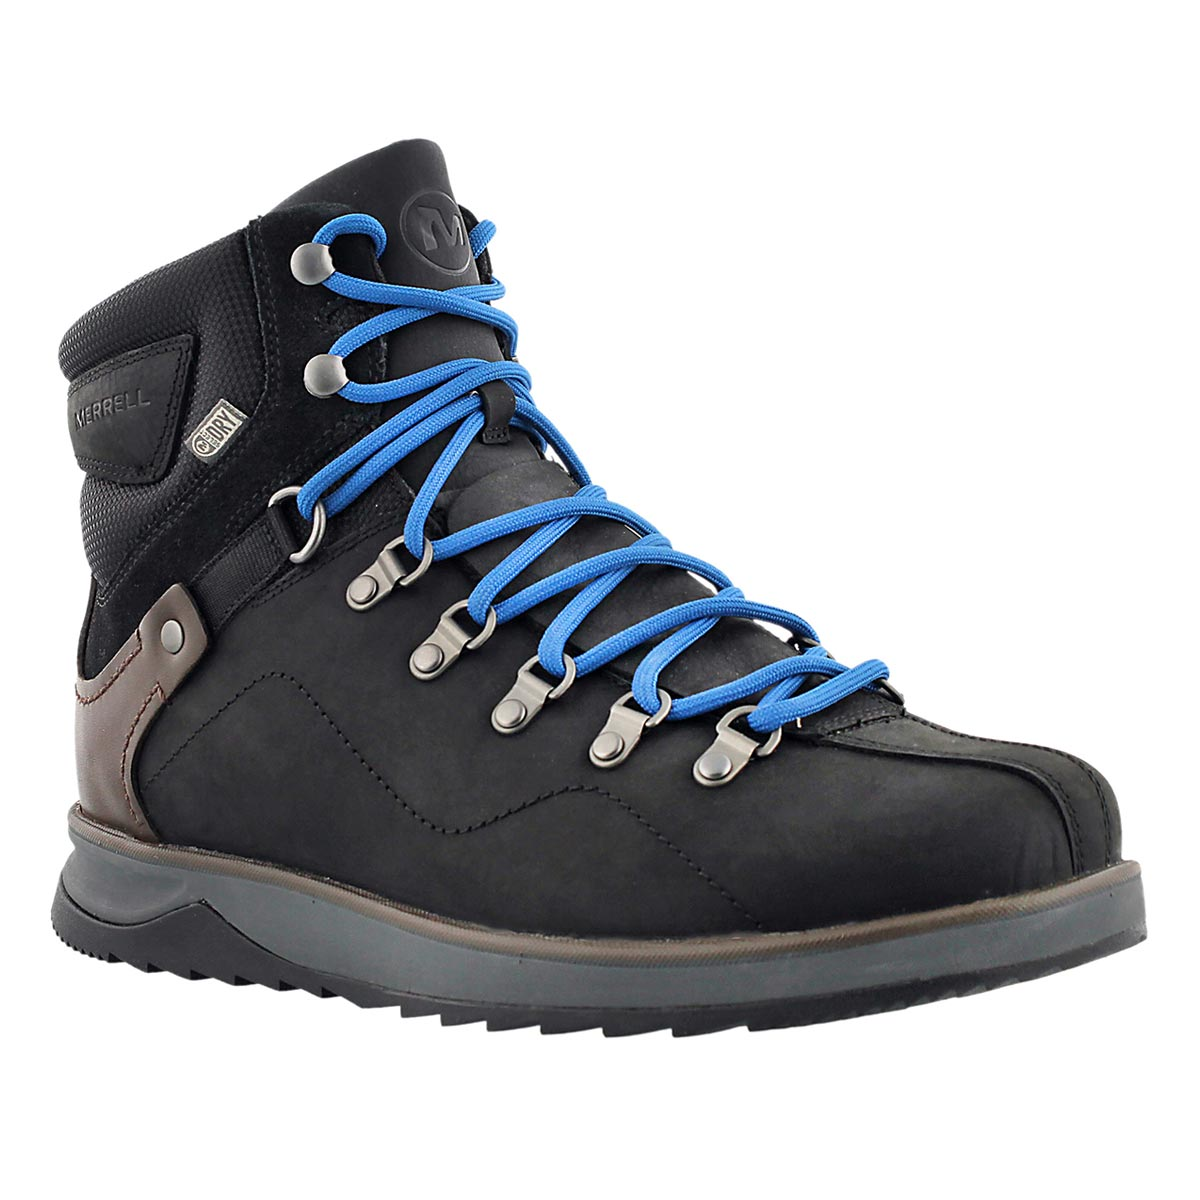 Mns Epiction Mid blk wtpf boot